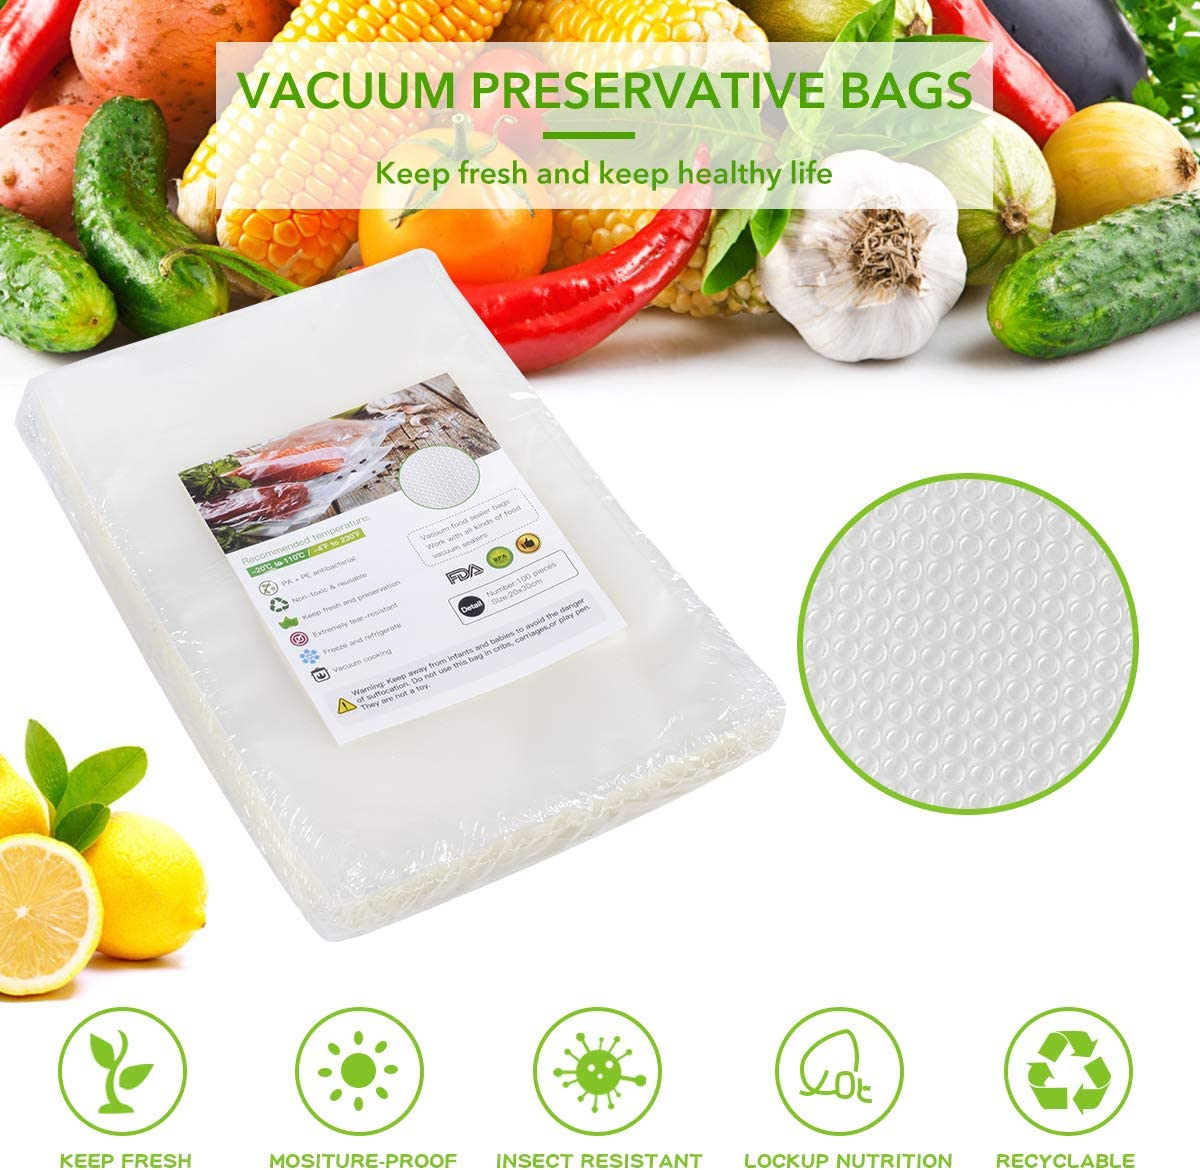 Amazon coupon code for Vacuum Sealer Bags